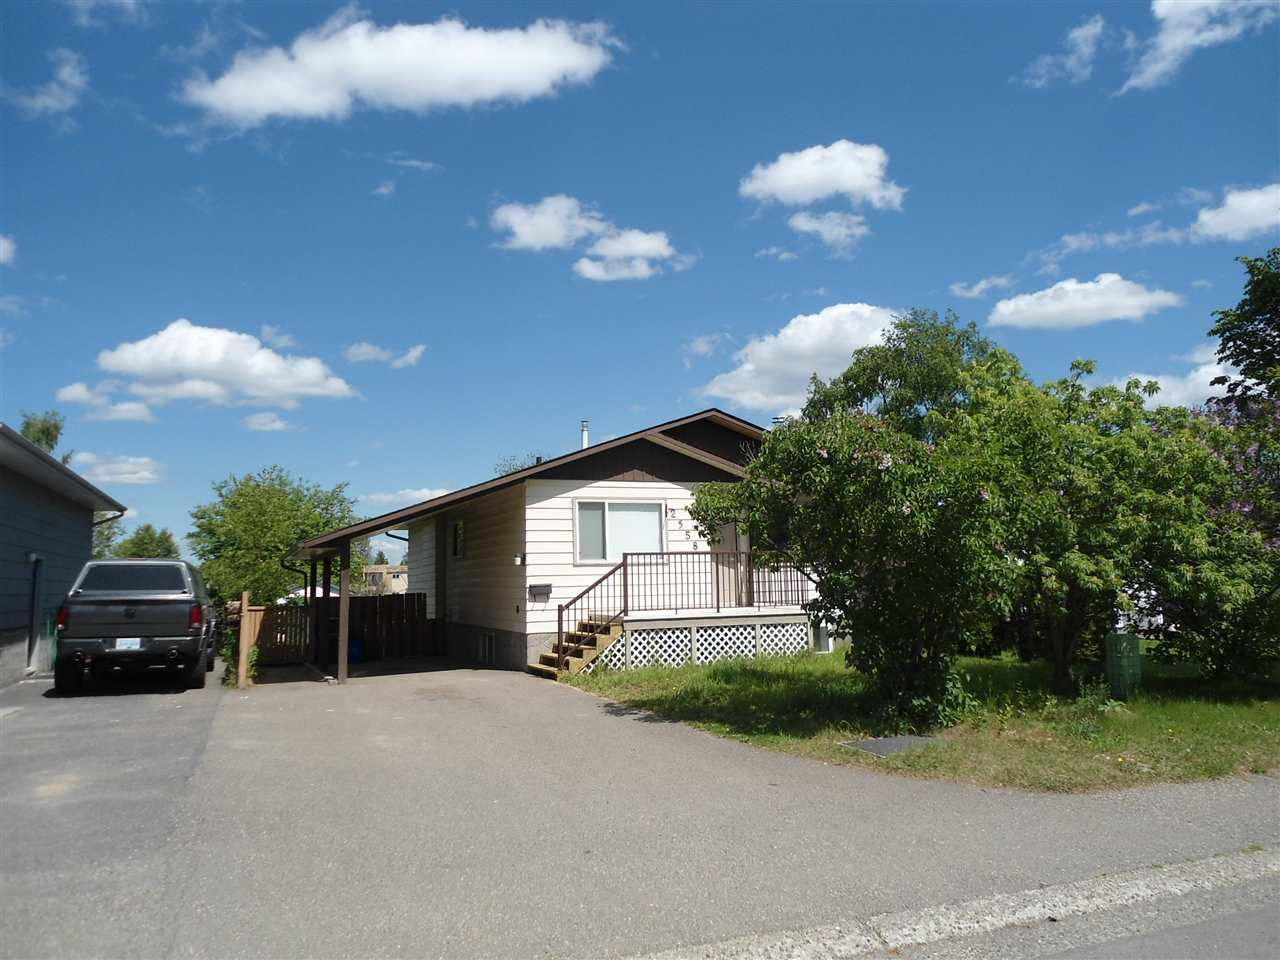 Main Photo: 2558 COYLE Street in Prince George: Pinecone House for sale (PG City West (Zone 71))  : MLS®# R2069598